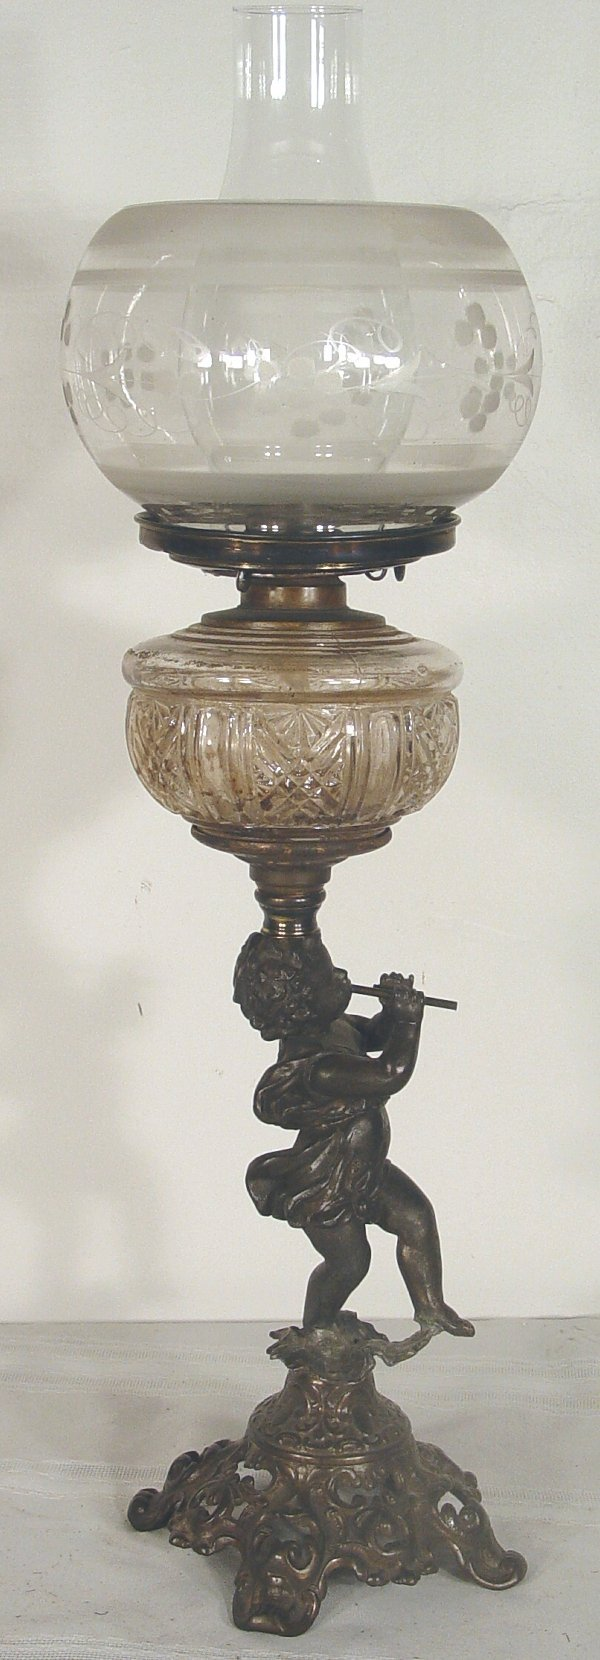 1016: Victorian fluid lamp, cherub form base